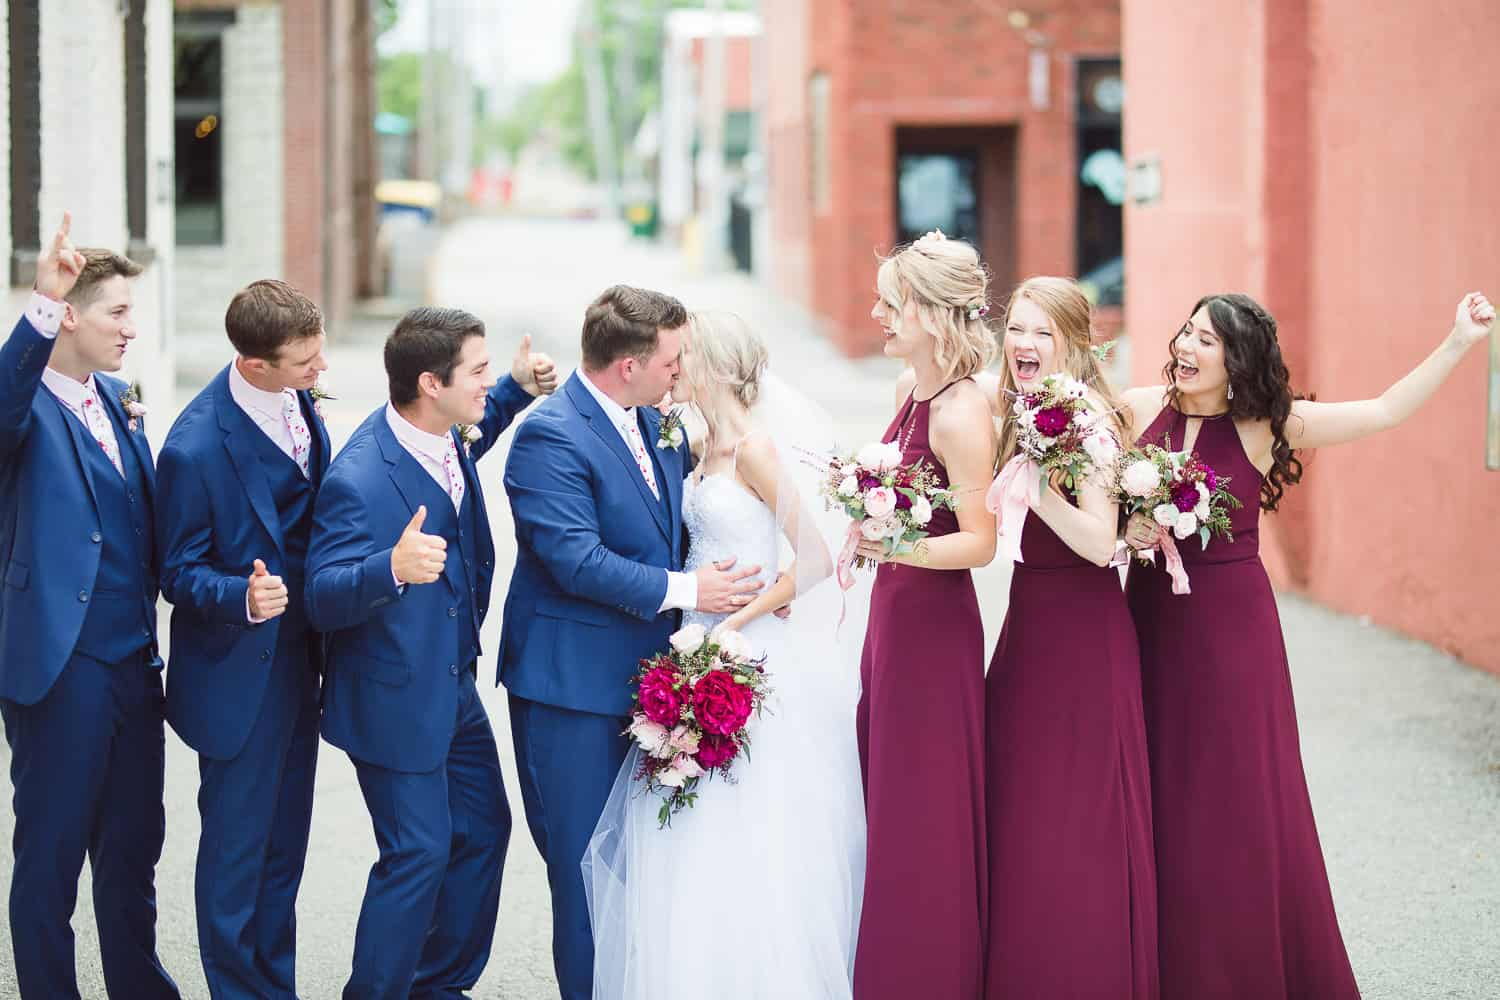 Downtown Lee's Summit wedding pictures